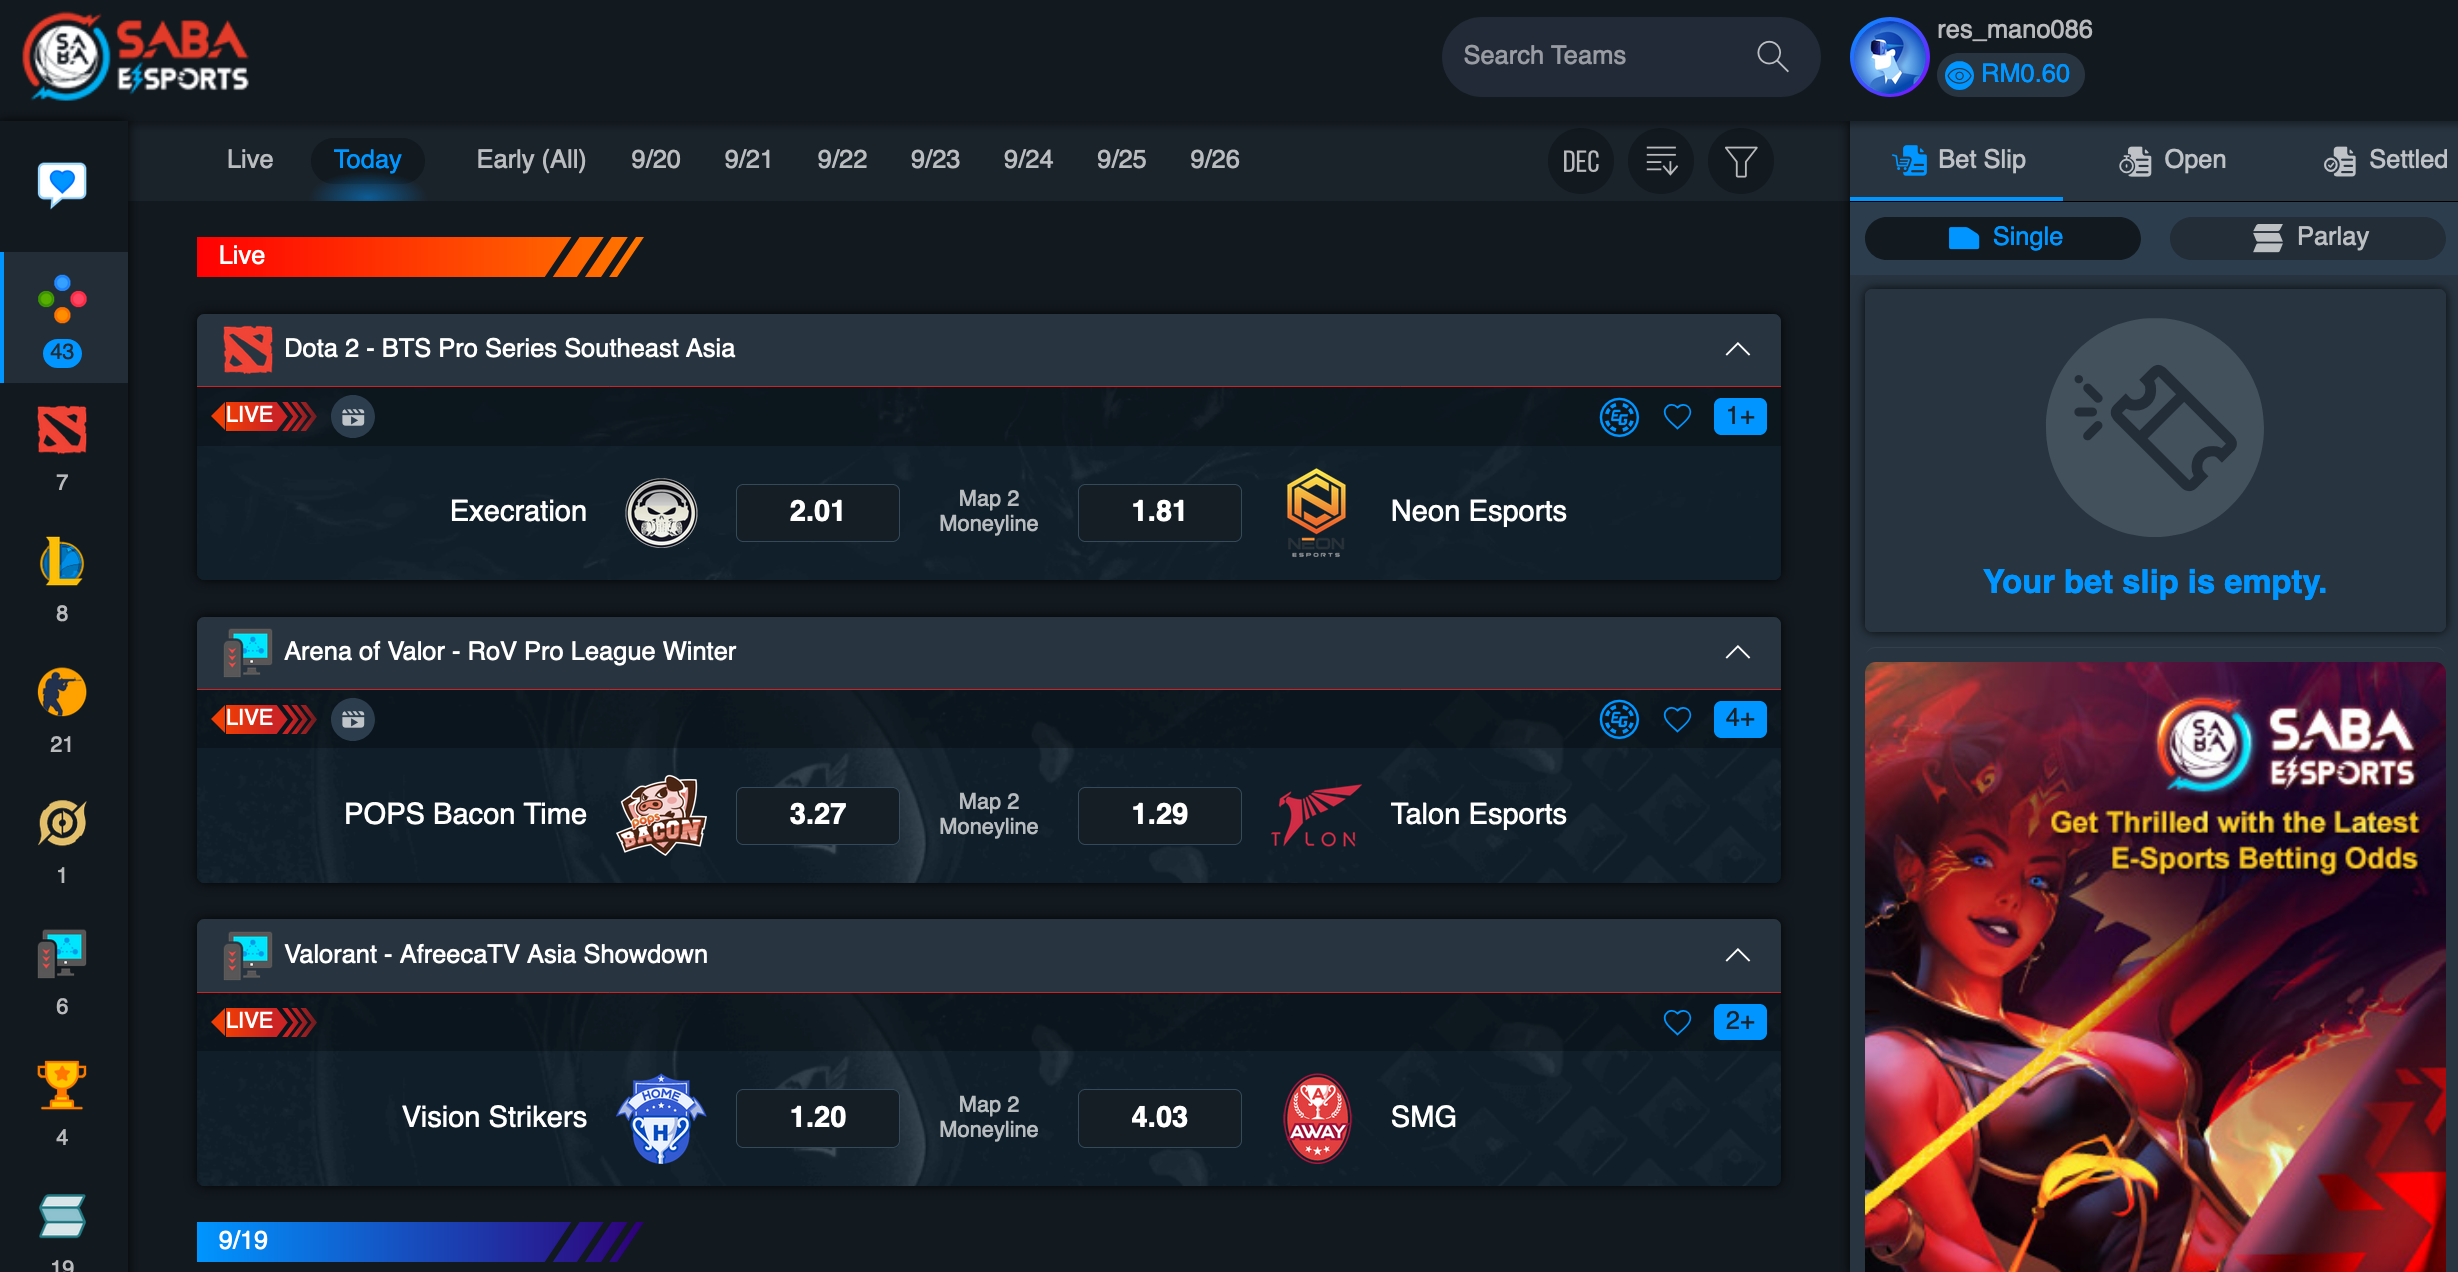 Saba Esports Betting Interface In Rescuebet